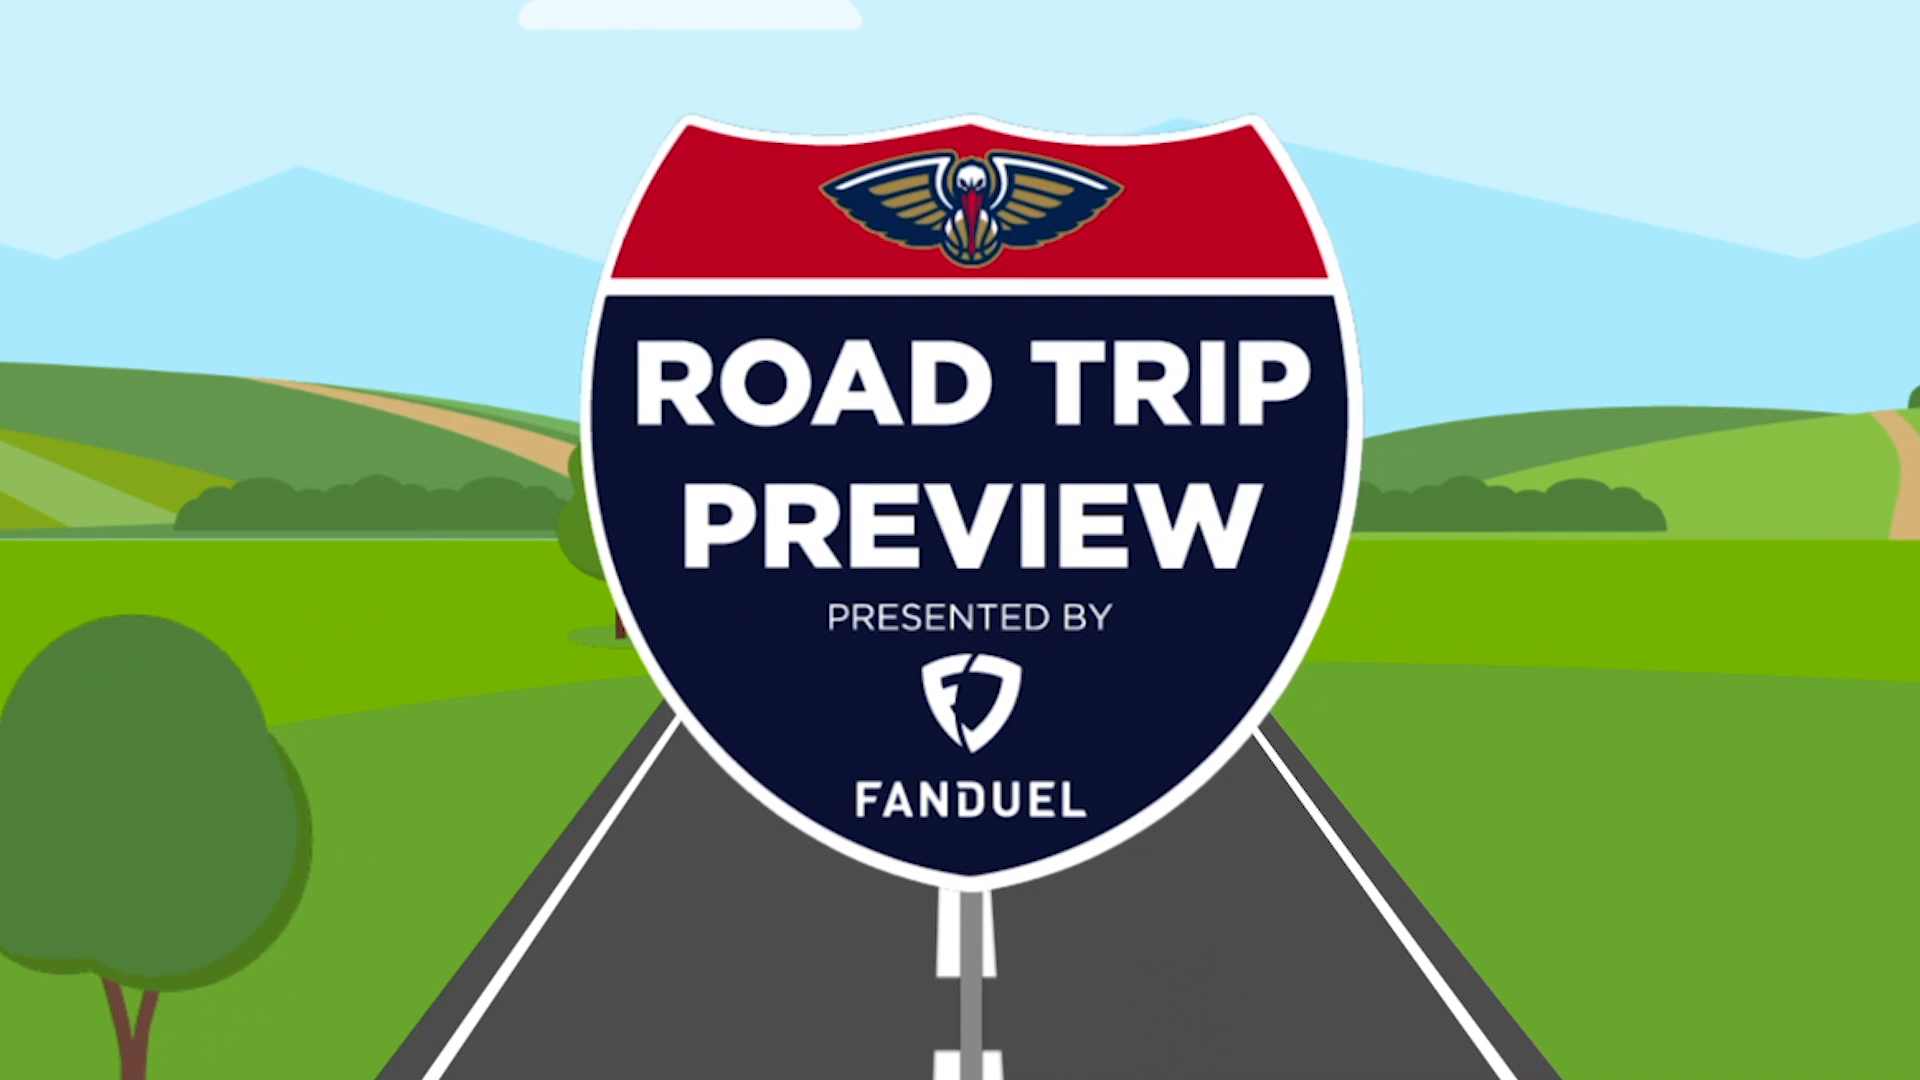 Pelicans Road Trip Preview presented by Fan Duel | Milwaukee